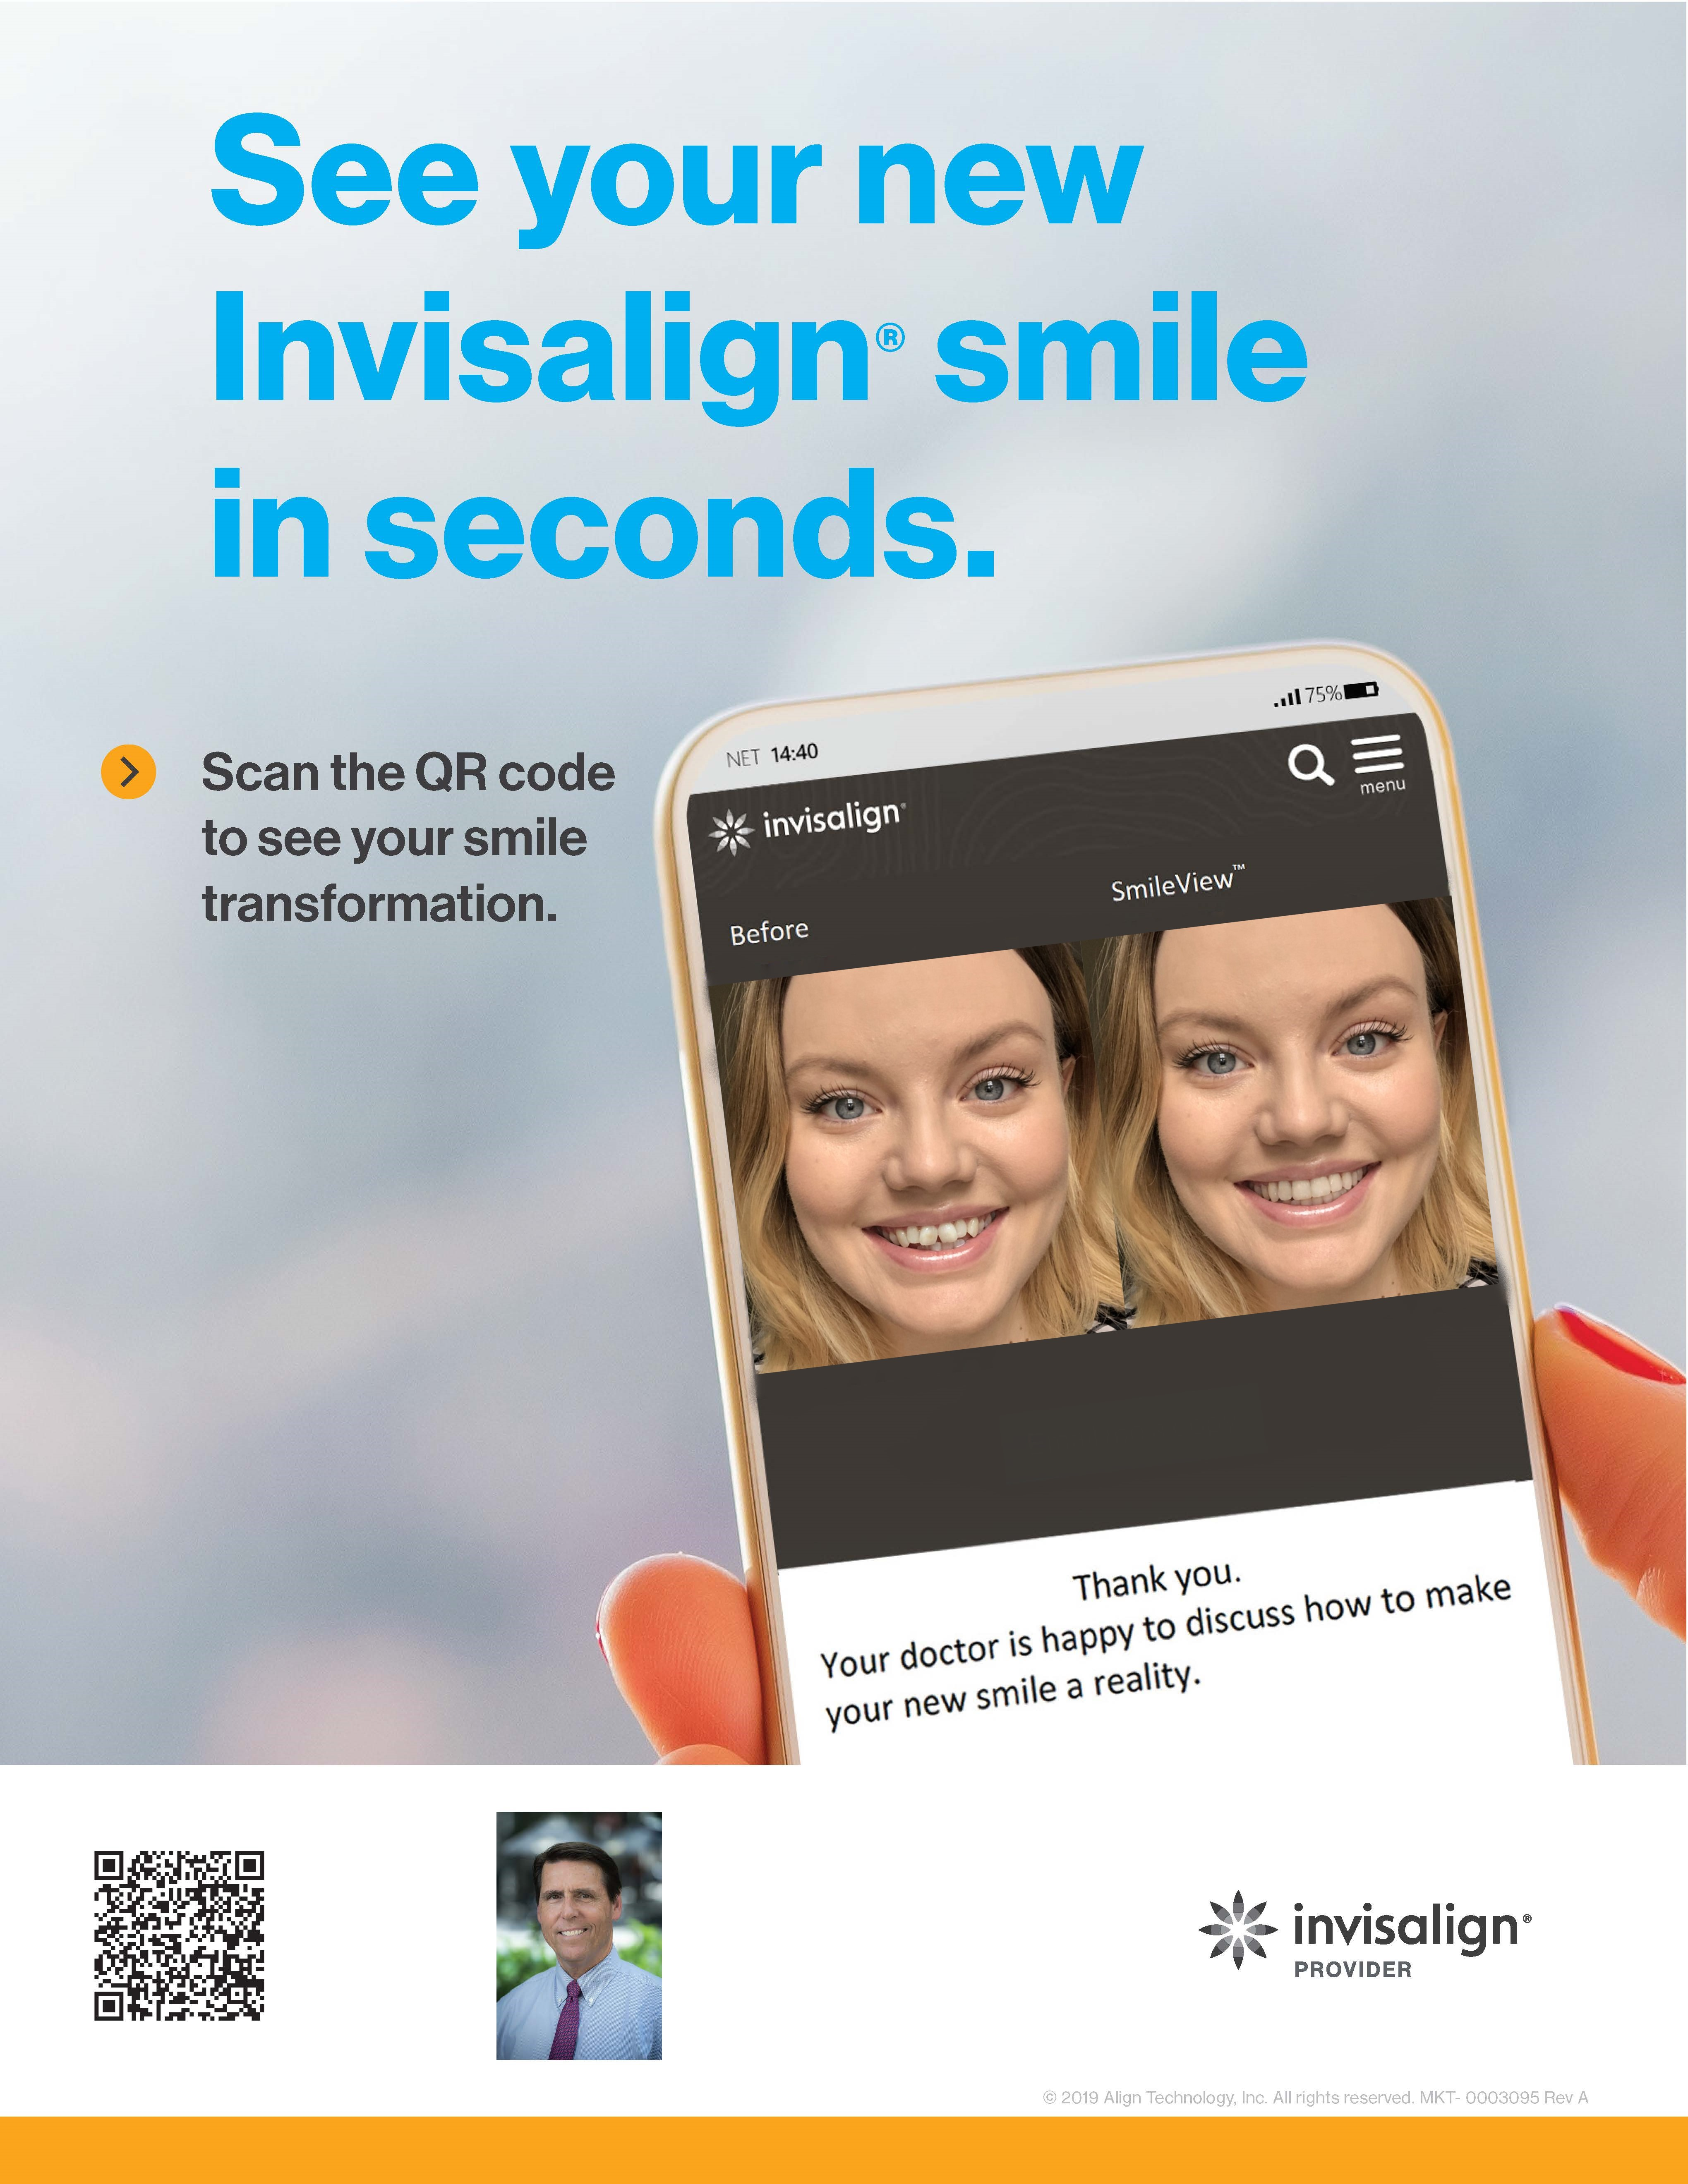 See Your New Invisalign® Smile in Seconds